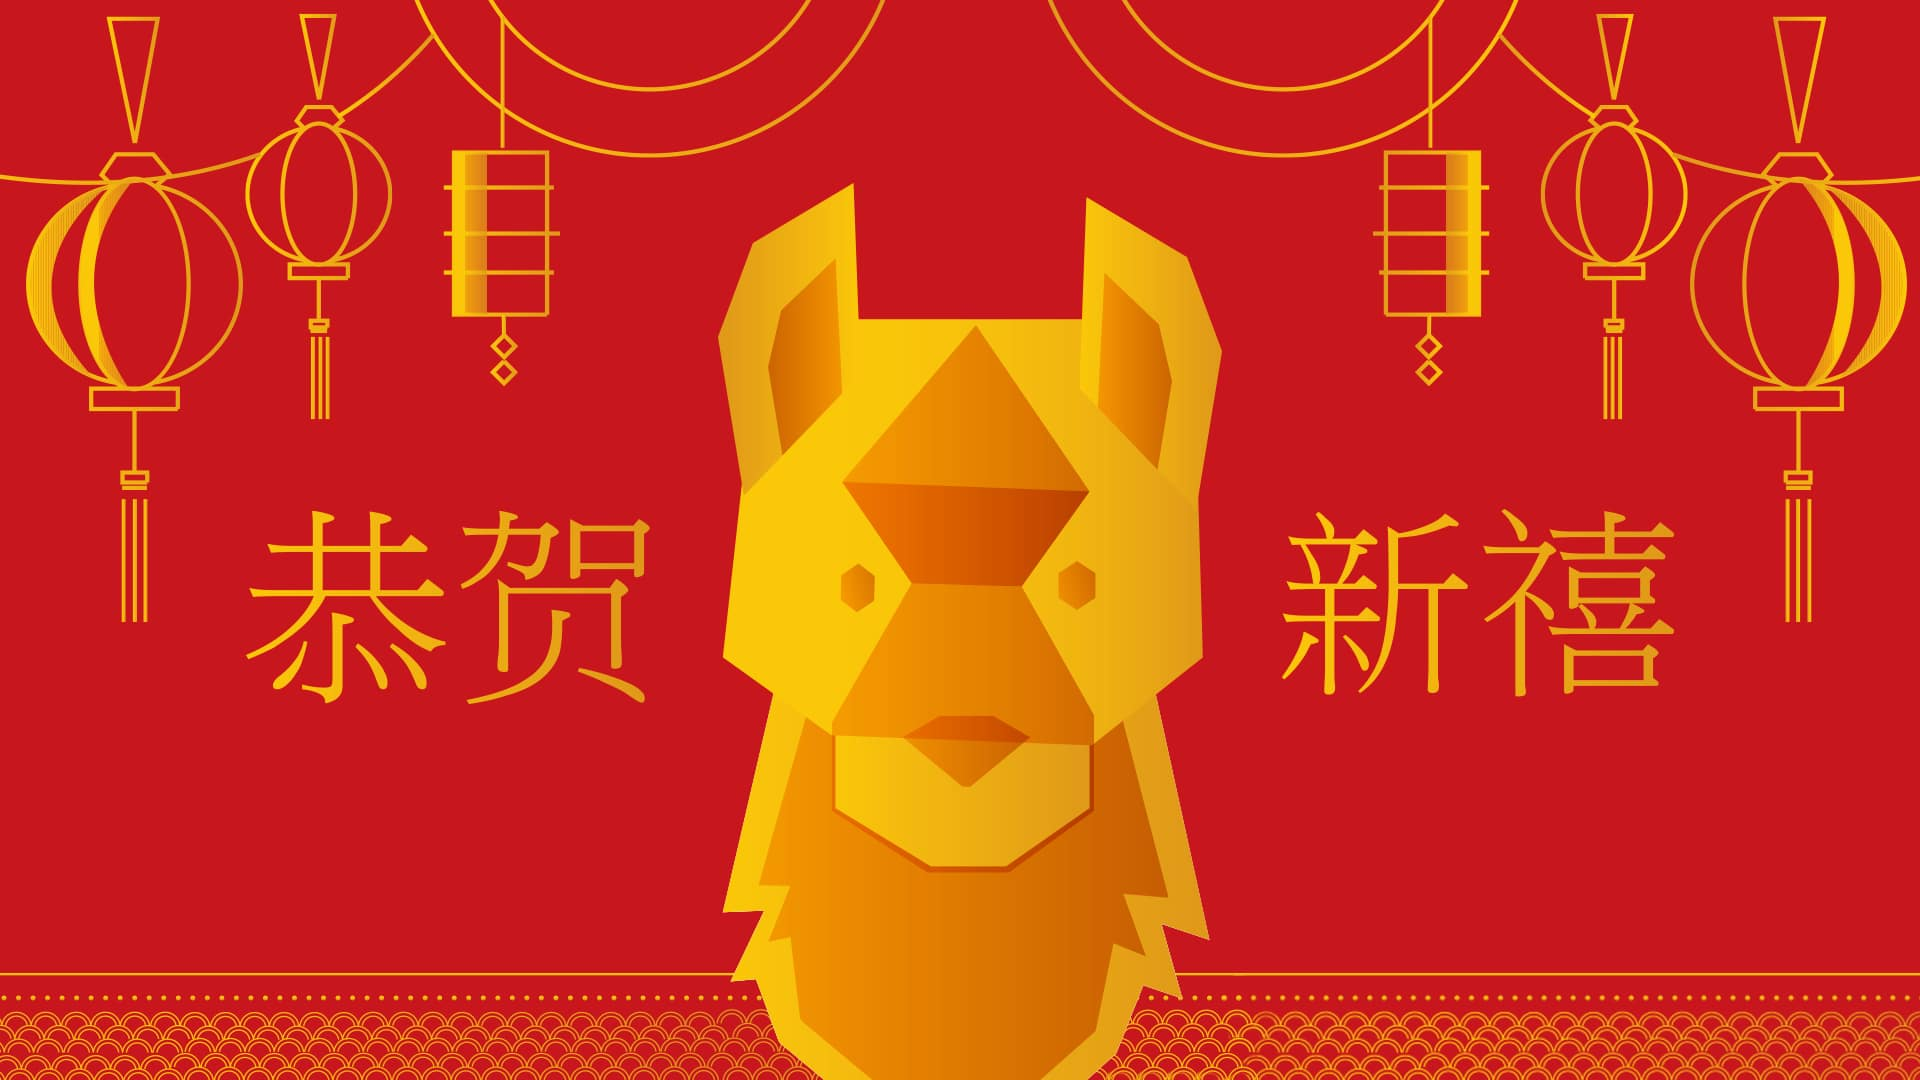 Happy Chinese New Year Greetings Cards